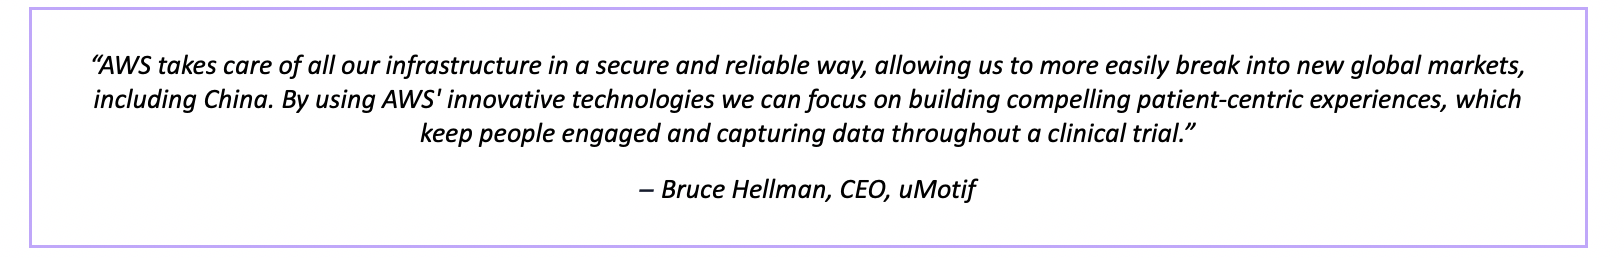 """""""AWS takes care of all our infrastructure in a secure and reliable way, allowing us to more easily break into new global markets, including China. By using AWS' innovative technologies we can focus on building compelling patient-centric experiences, which keep people engaged and capturing data throughout a clinical trial."""" – Bruce Hellman, CEO, uMotif"""